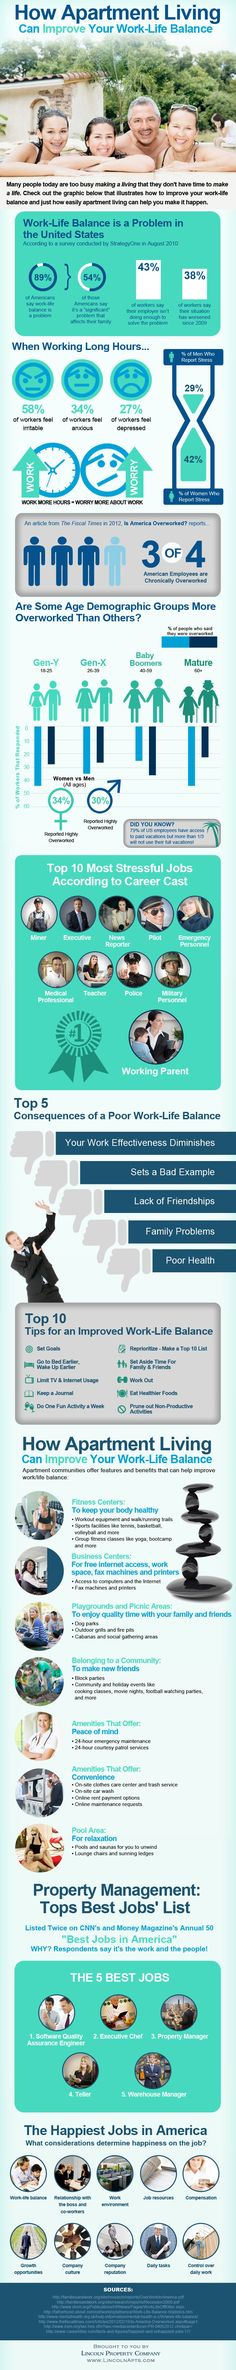 "This infographic titled ""How Apartment Living Can Improve Your Work-Life Balance"" shows how living in a supportive apartment community can help offset the stress of work."